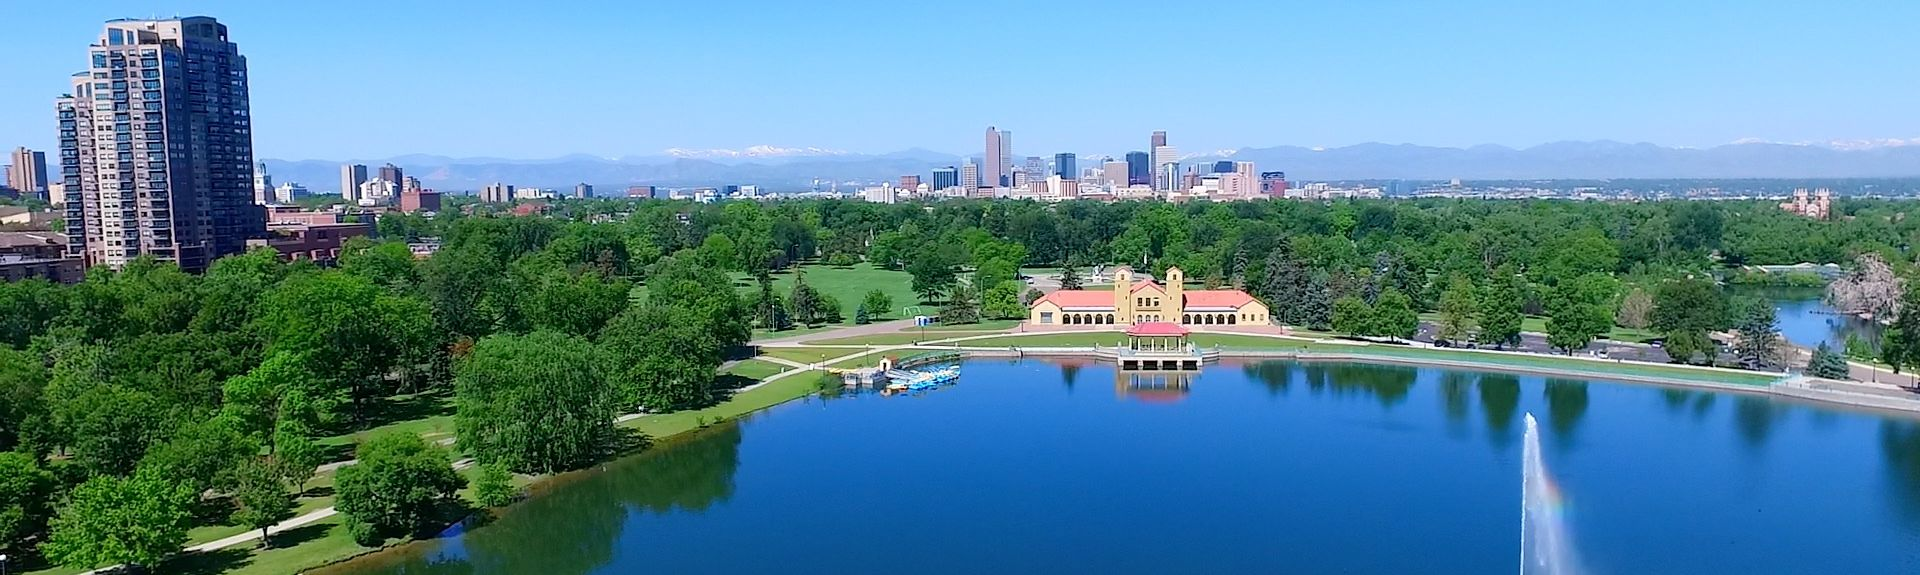 Whittier, Denver, Colorado, USA